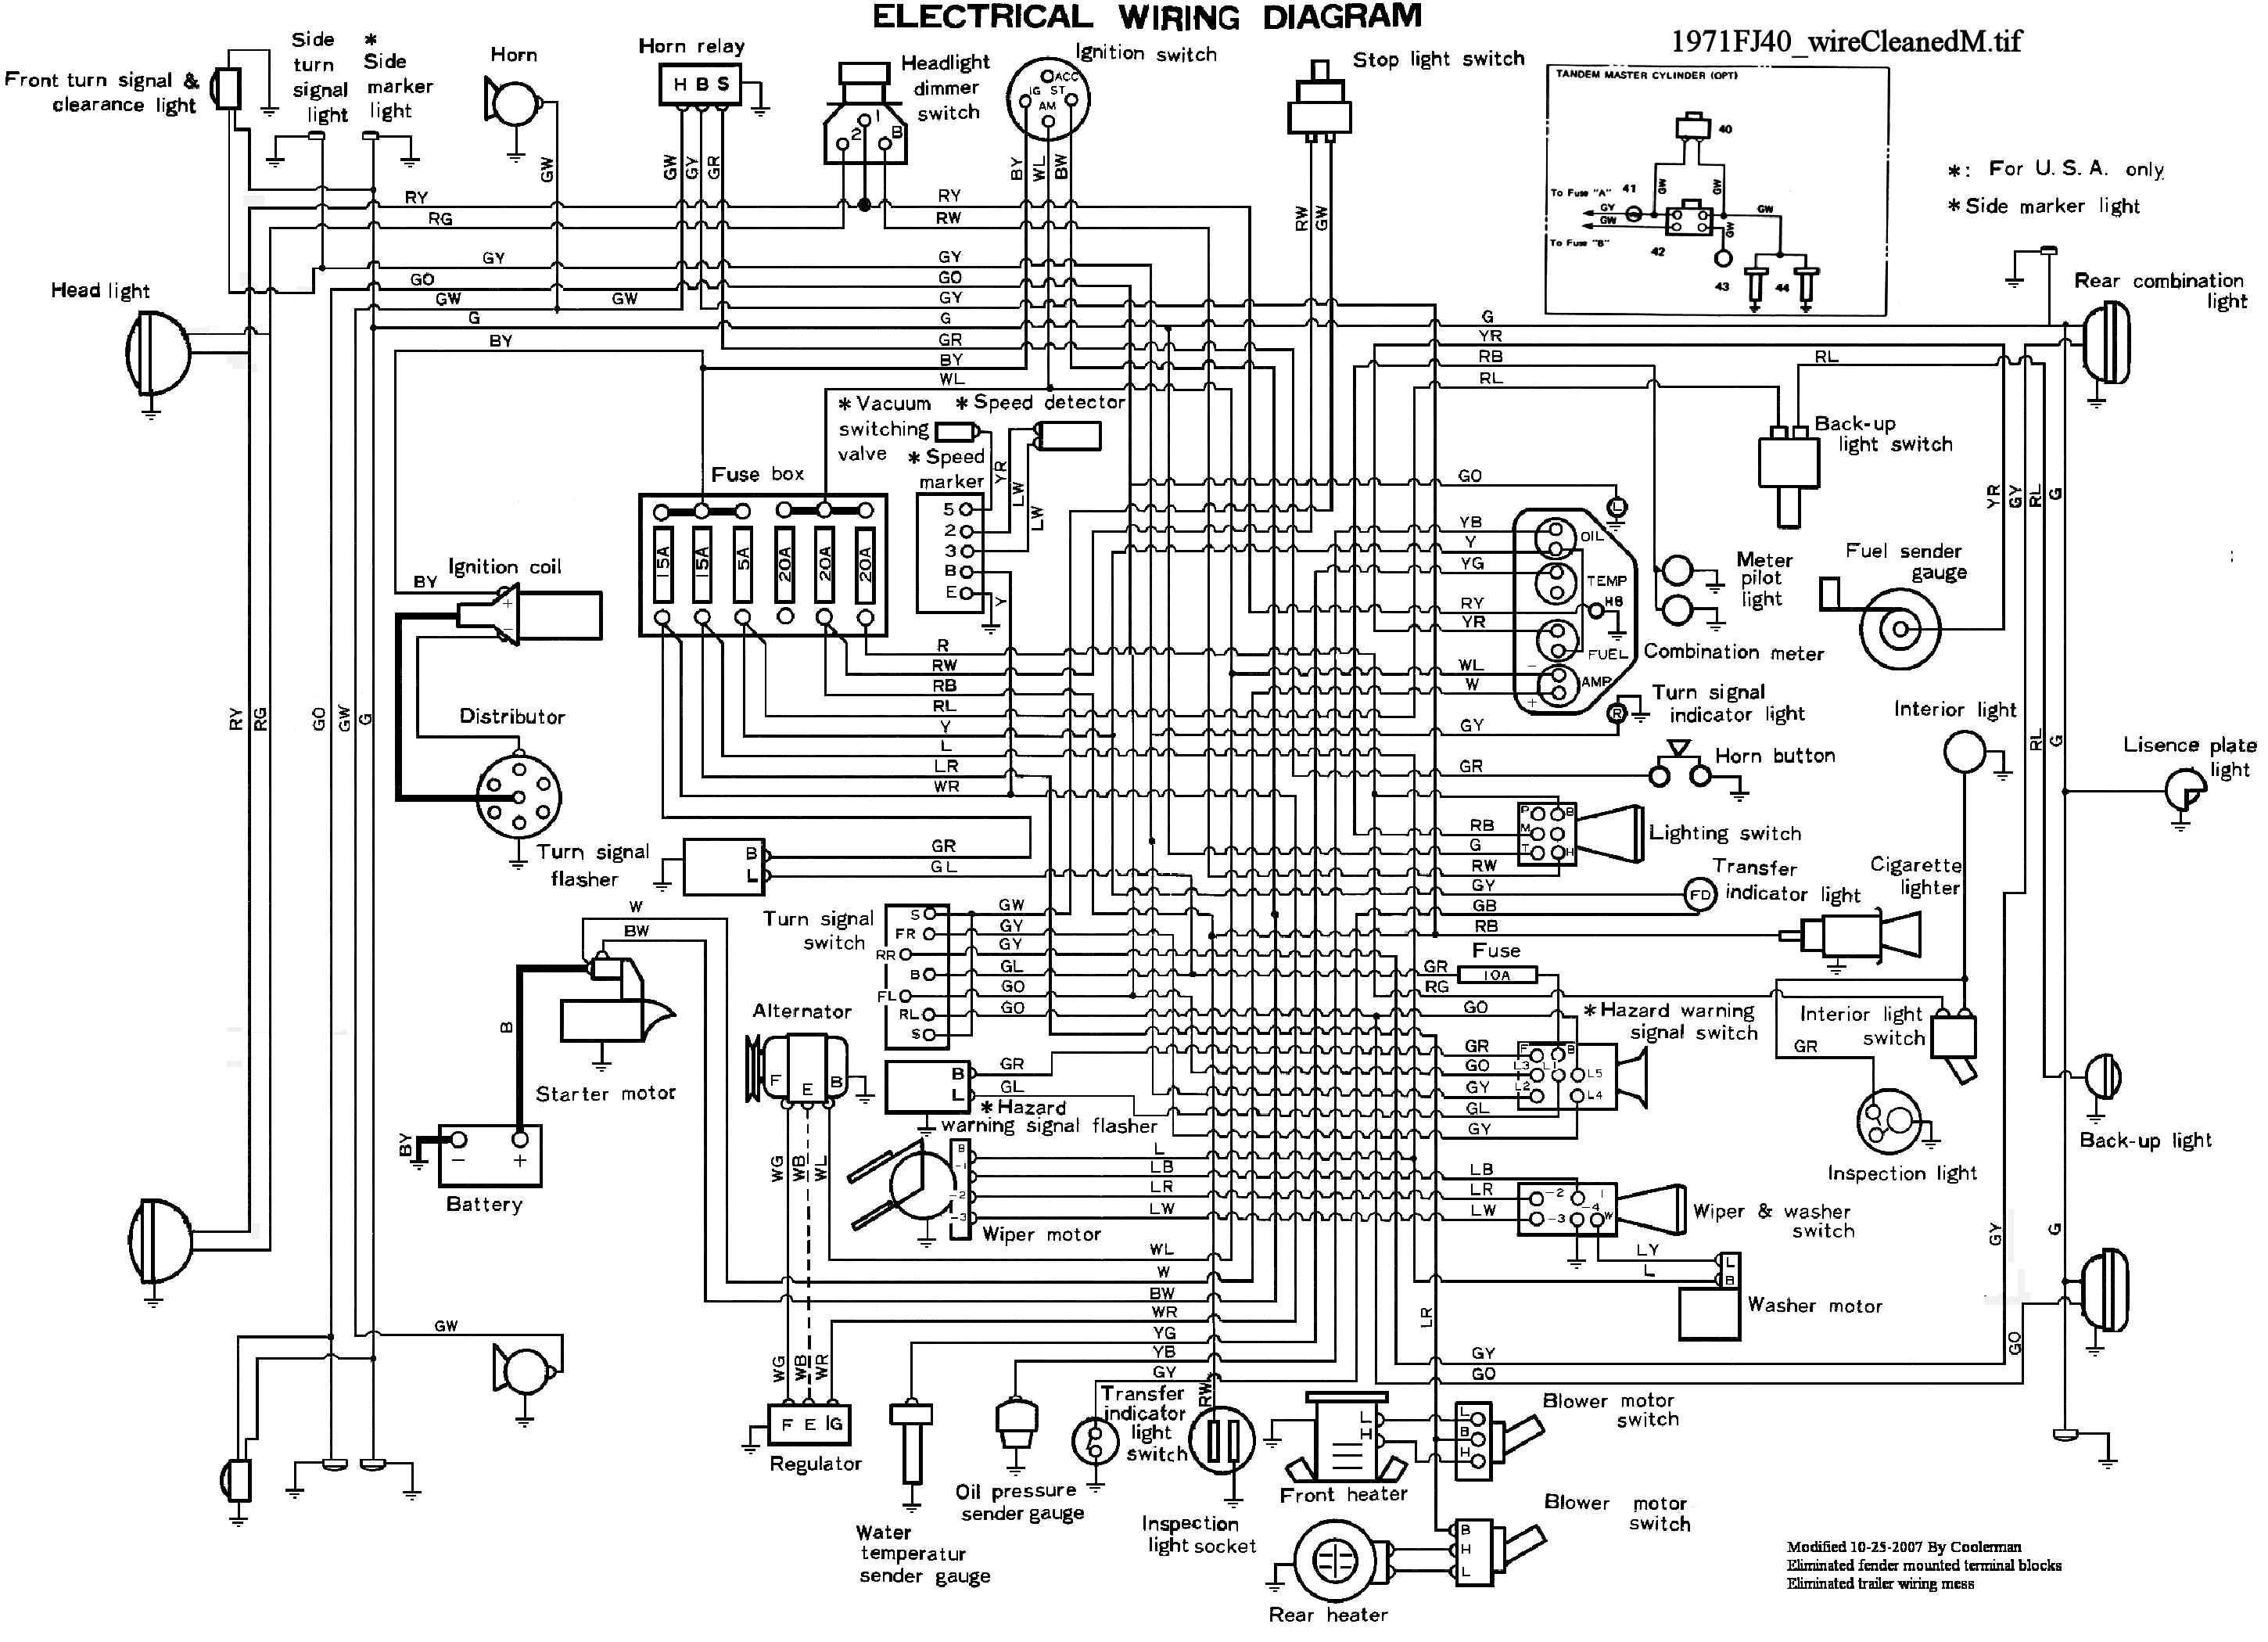 Fj40 Land Cruiser Wiring Diagram Starting Know About Rh Globalsoftware Inc Com Fj Diagrams Pdf Toyota